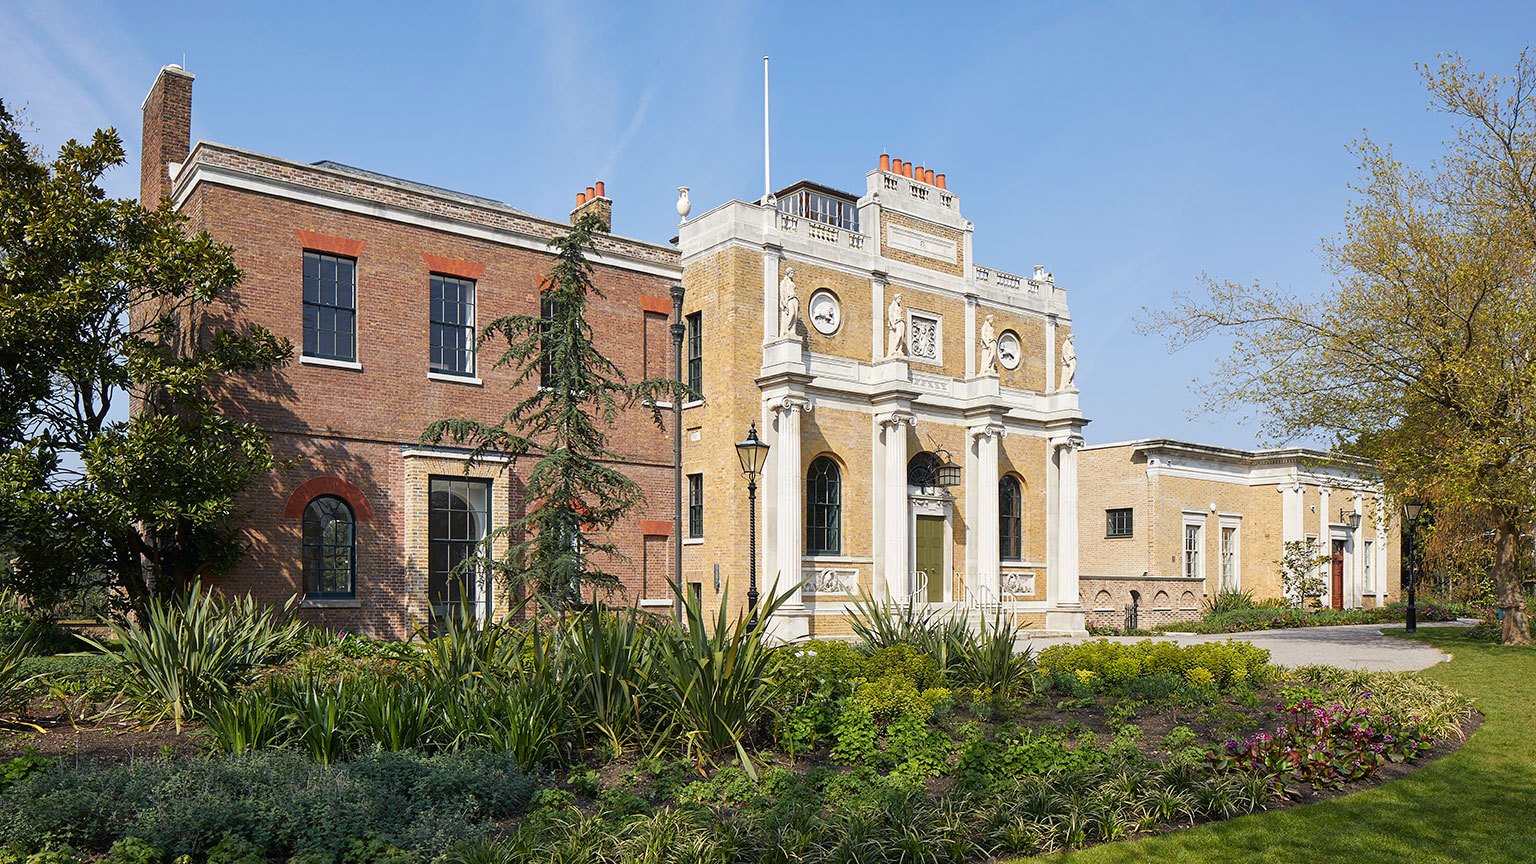 Pitzhanger Manor and Gallery